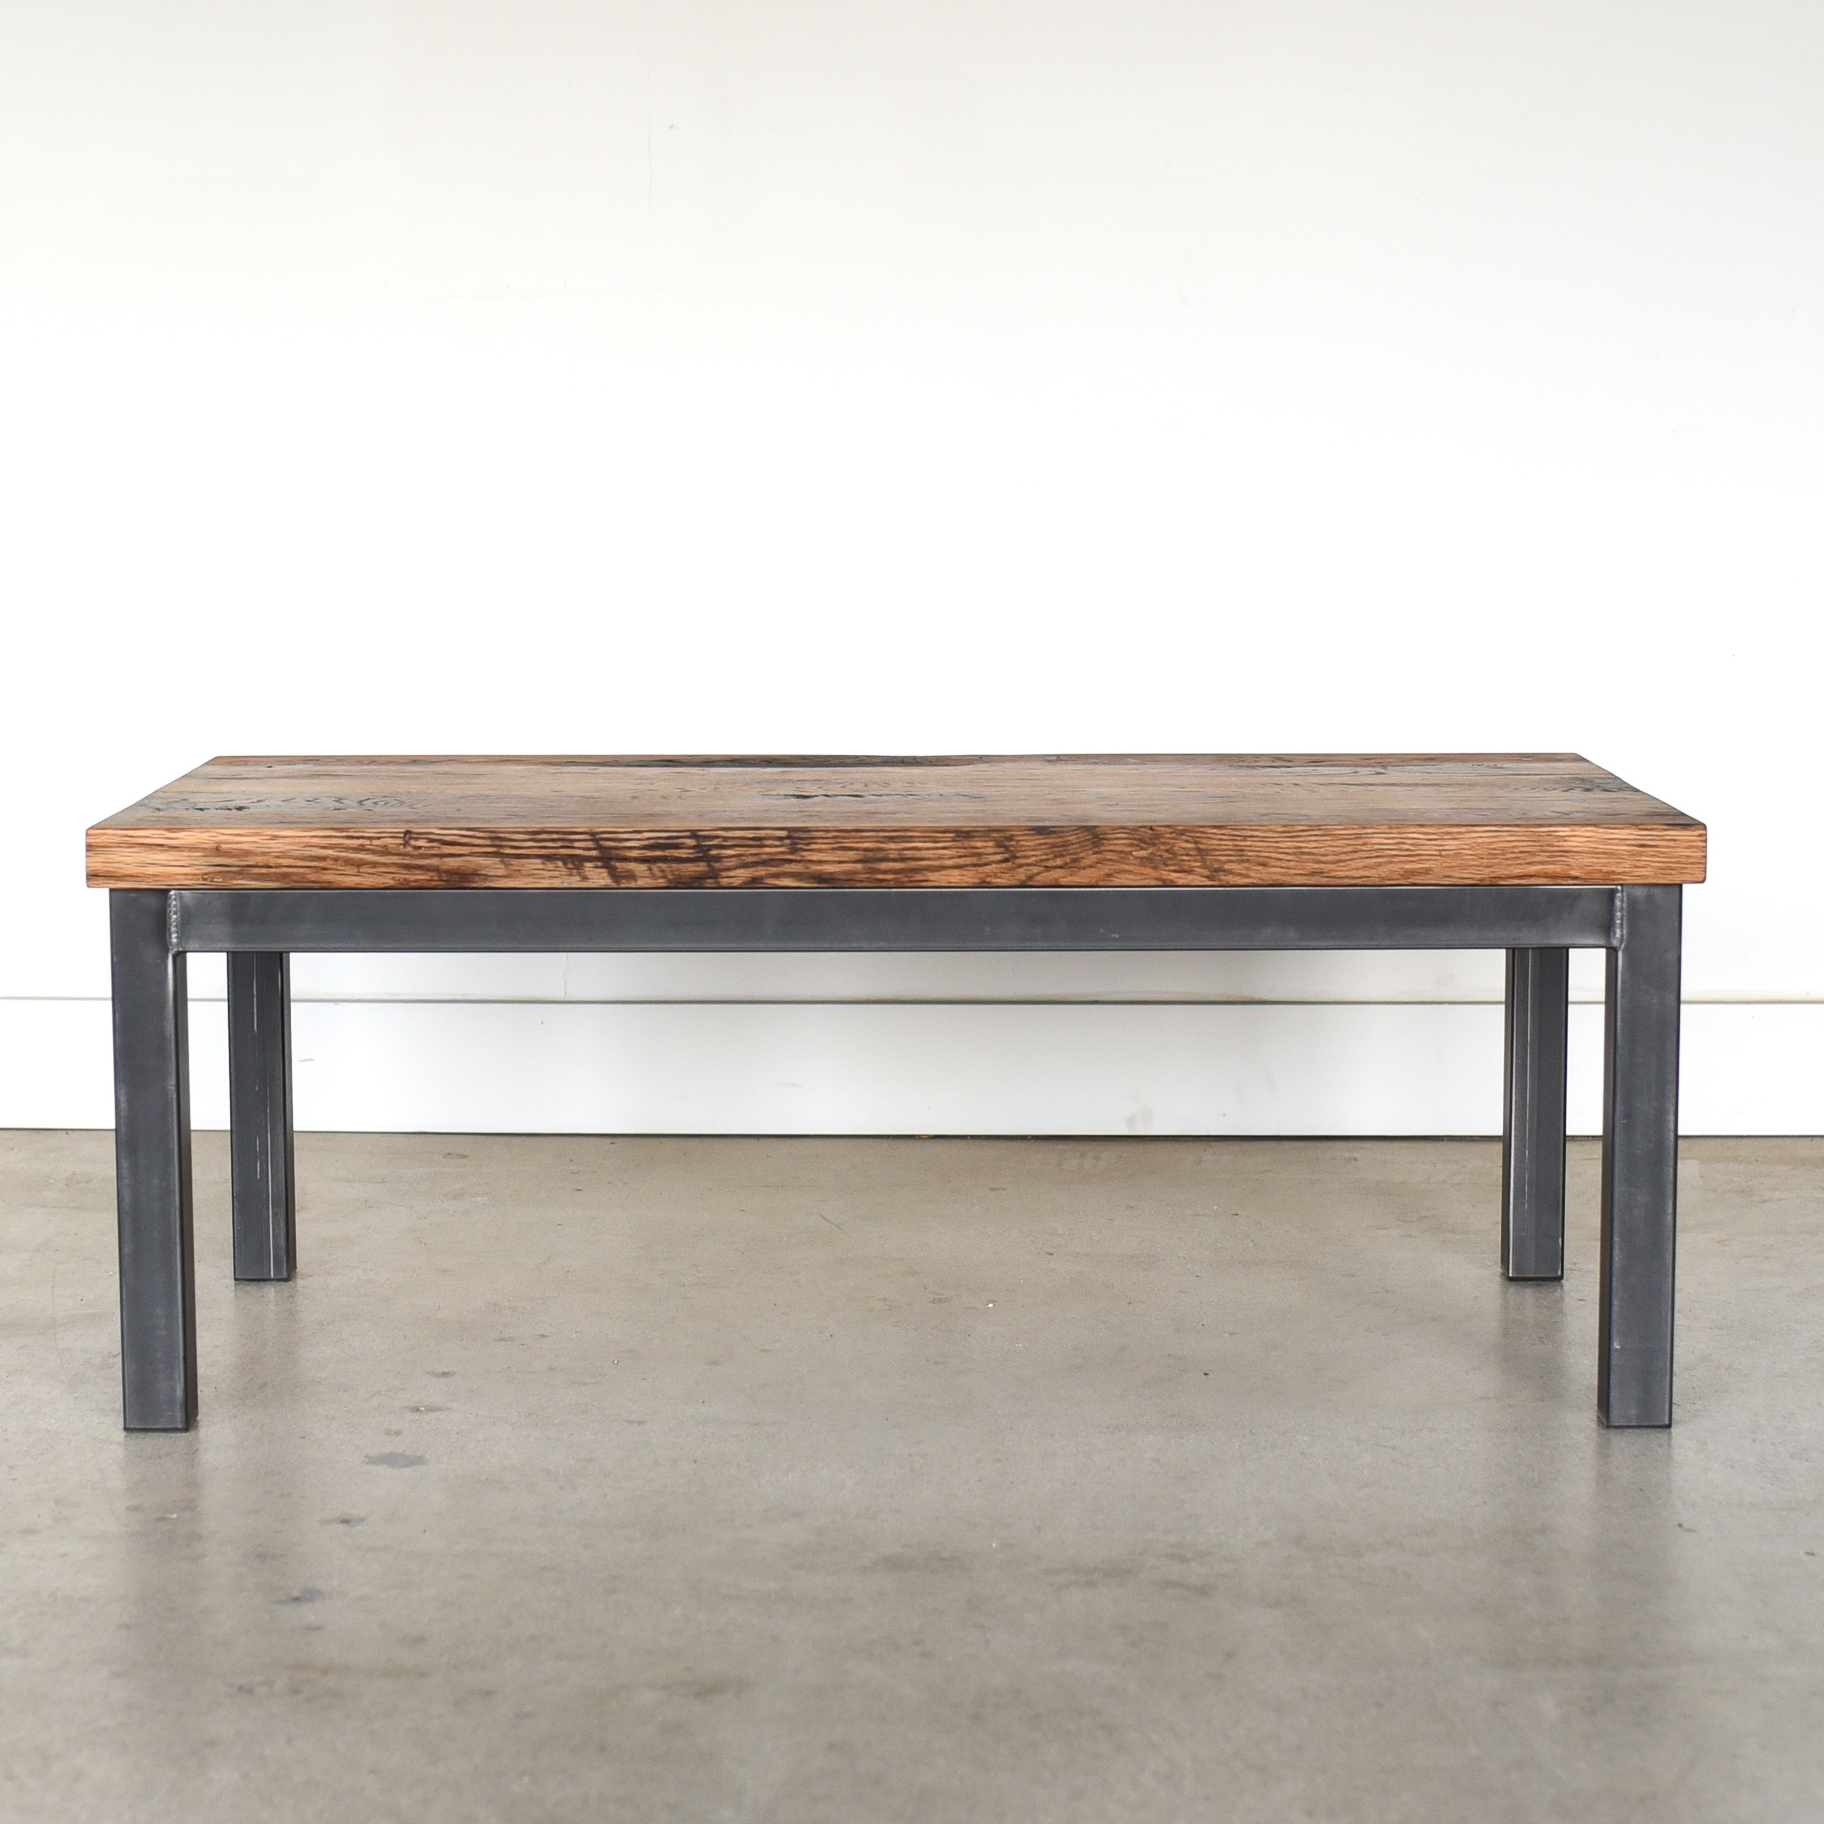 industrial steel frame coffee table 2 reclaimed top what we make